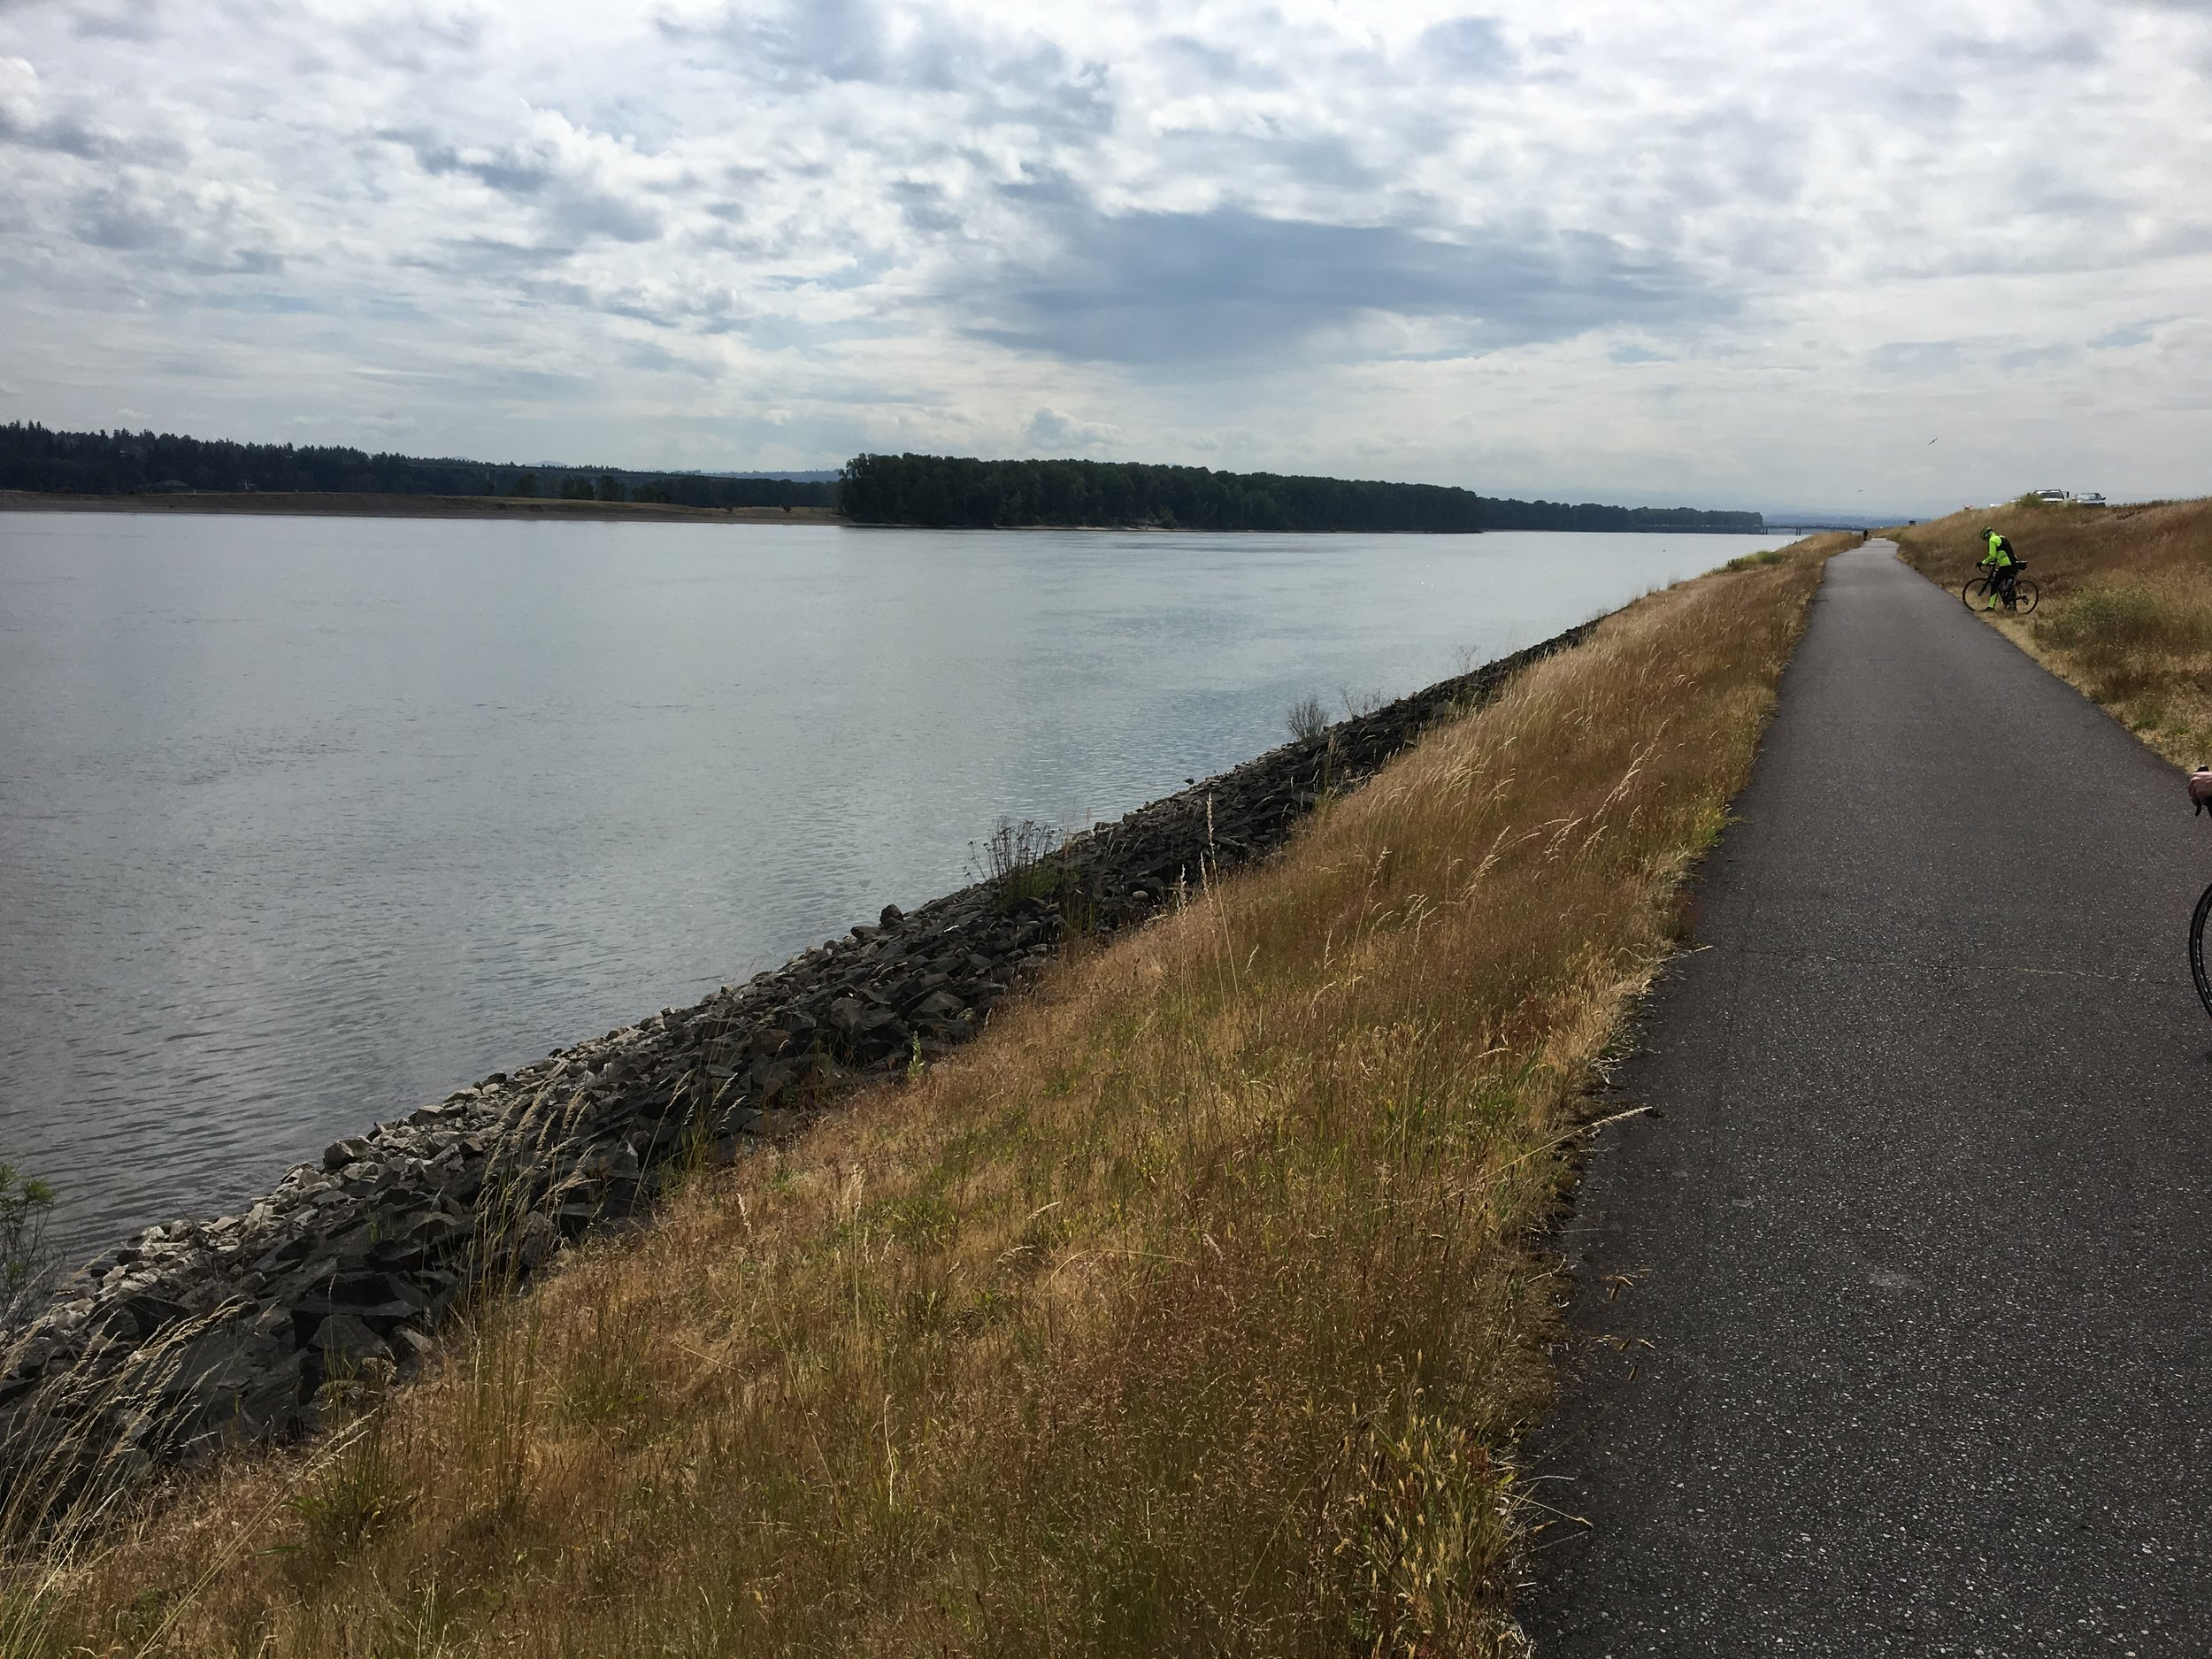 - Bike path along the Columbia River